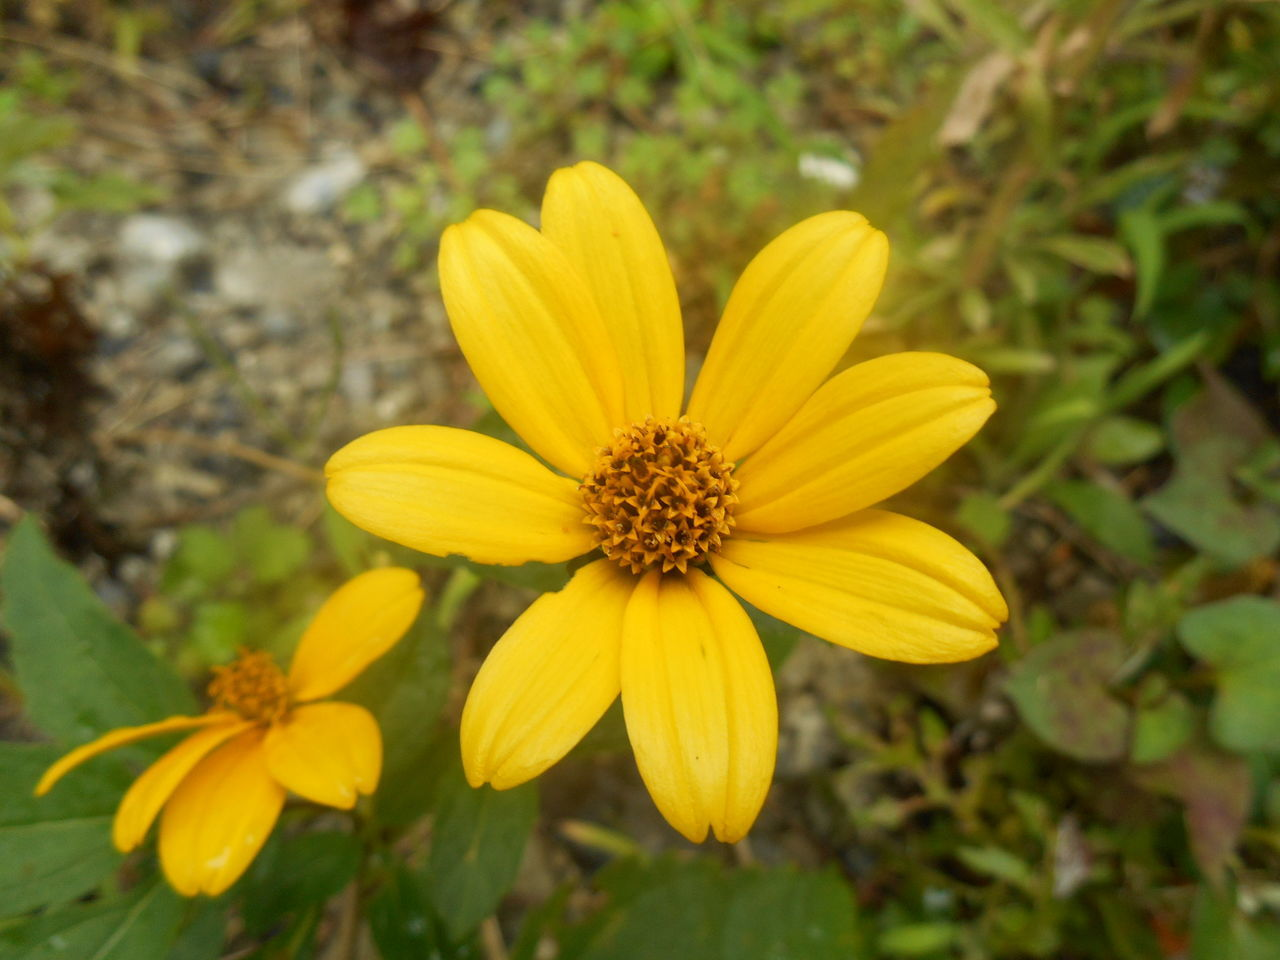 flower, petal, fragility, growth, nature, yellow, flower head, freshness, plant, beauty in nature, blooming, no people, close-up, outdoors, day